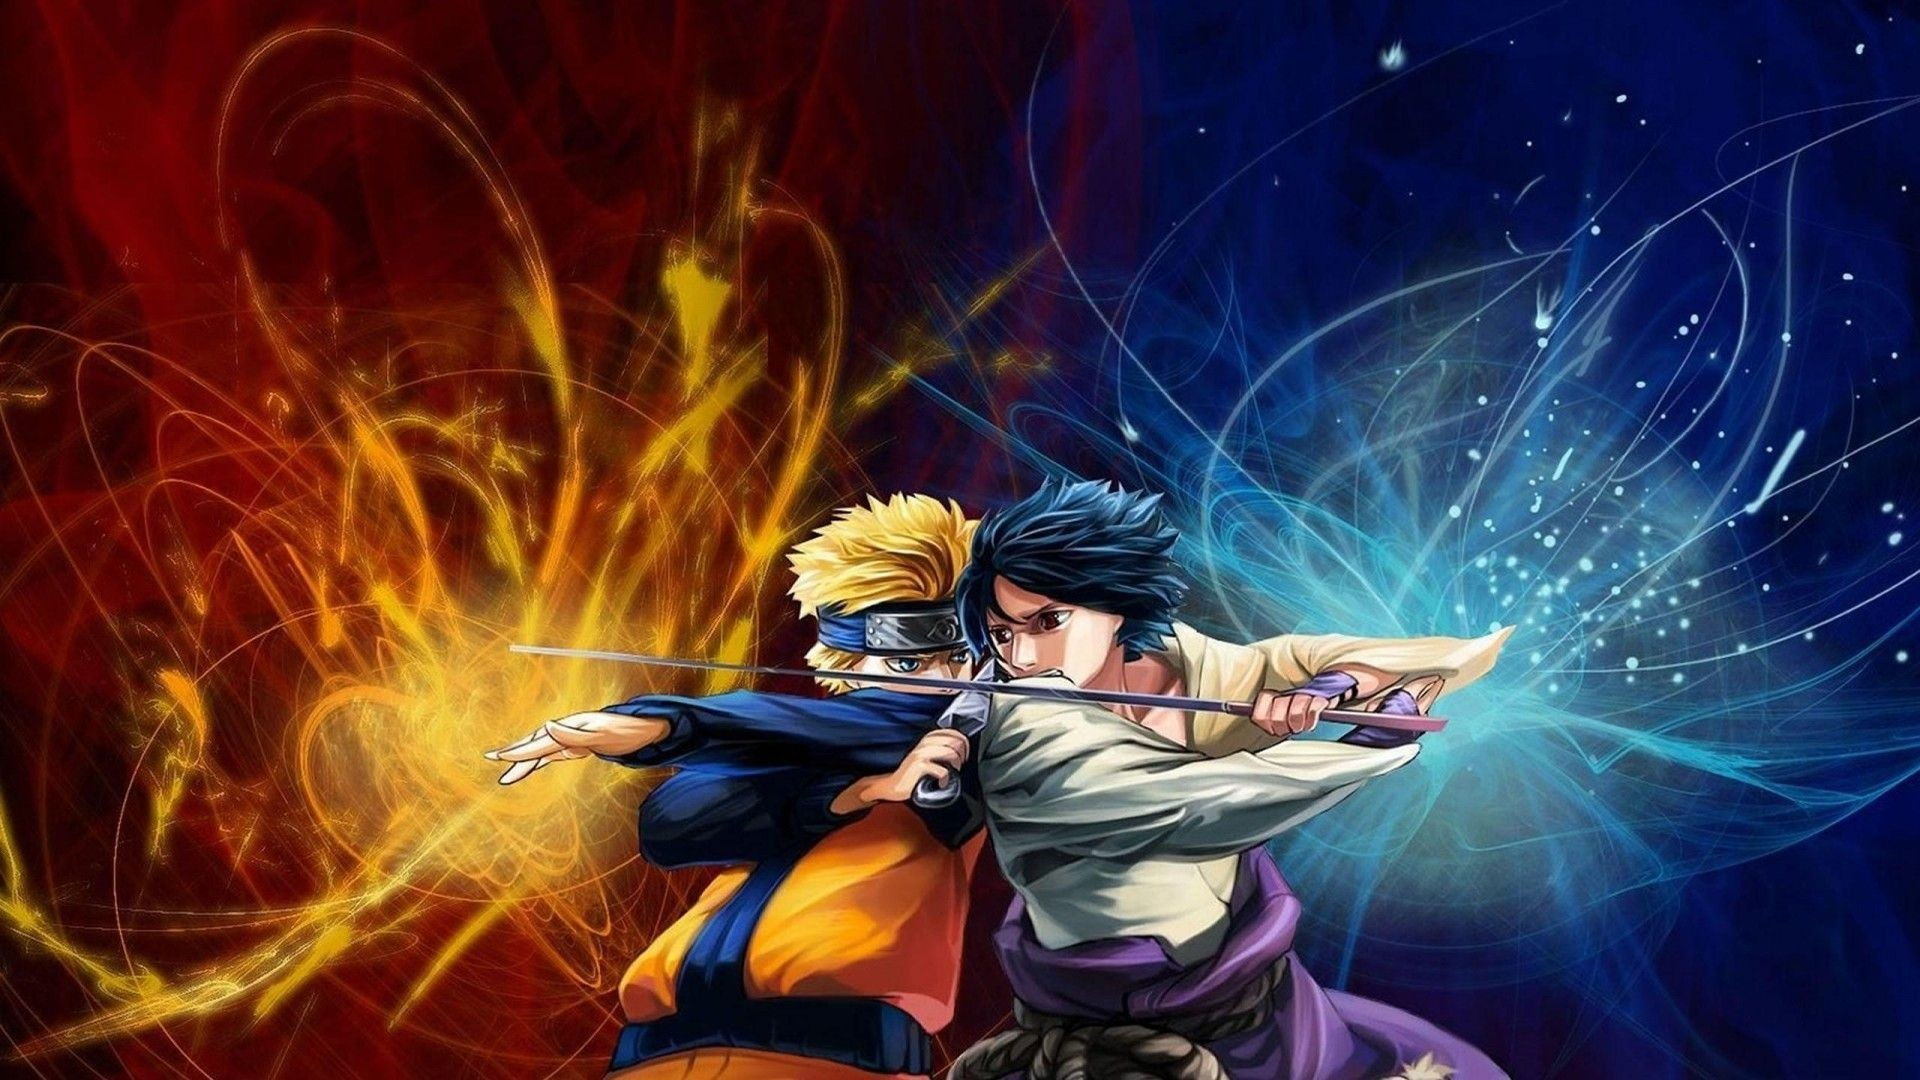 Must see Wallpaper Naruto Smartphone - 78529-naruto-wallpapers-1920x1080-images  Gallery.jpg